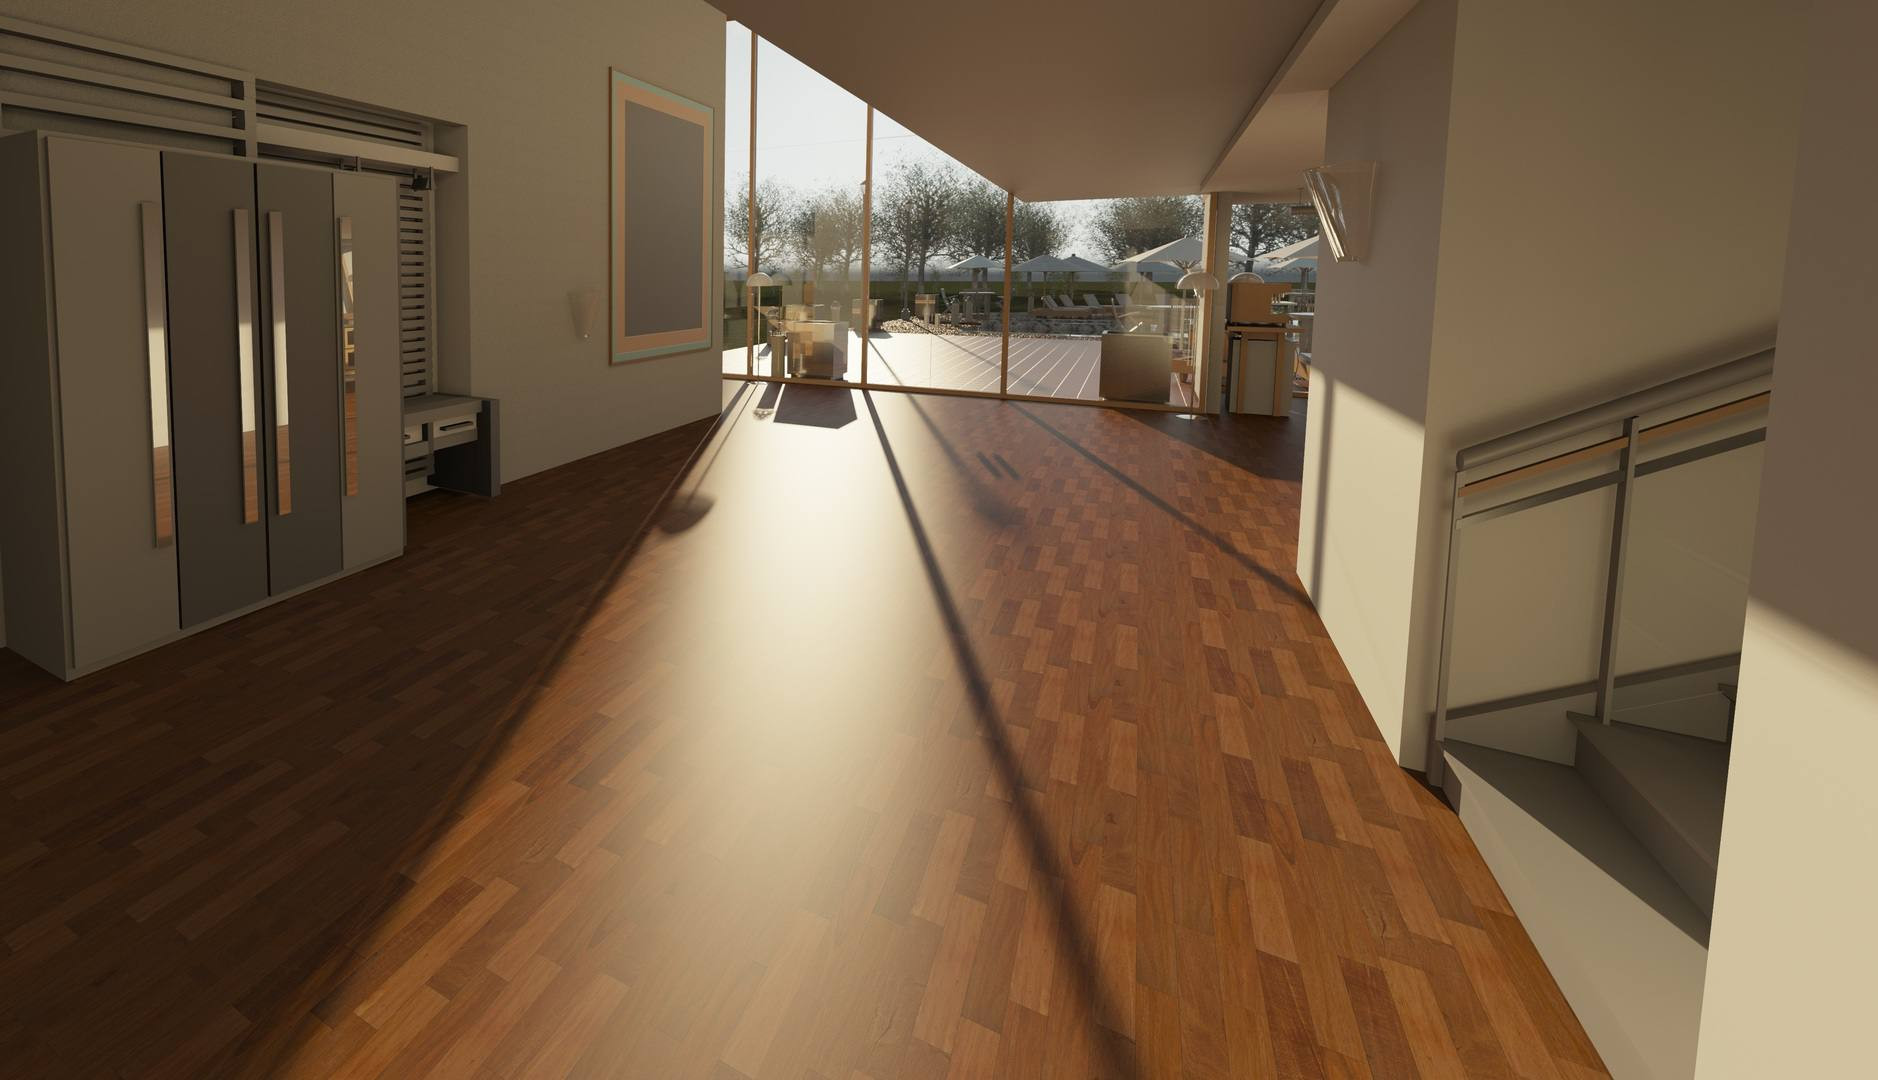 hardwood flooring tools required of common flooring types currently used in renovation and building regarding architecture wood house floor interior window 917178 pxhere com 5ba27a2cc9e77c00503b27b9